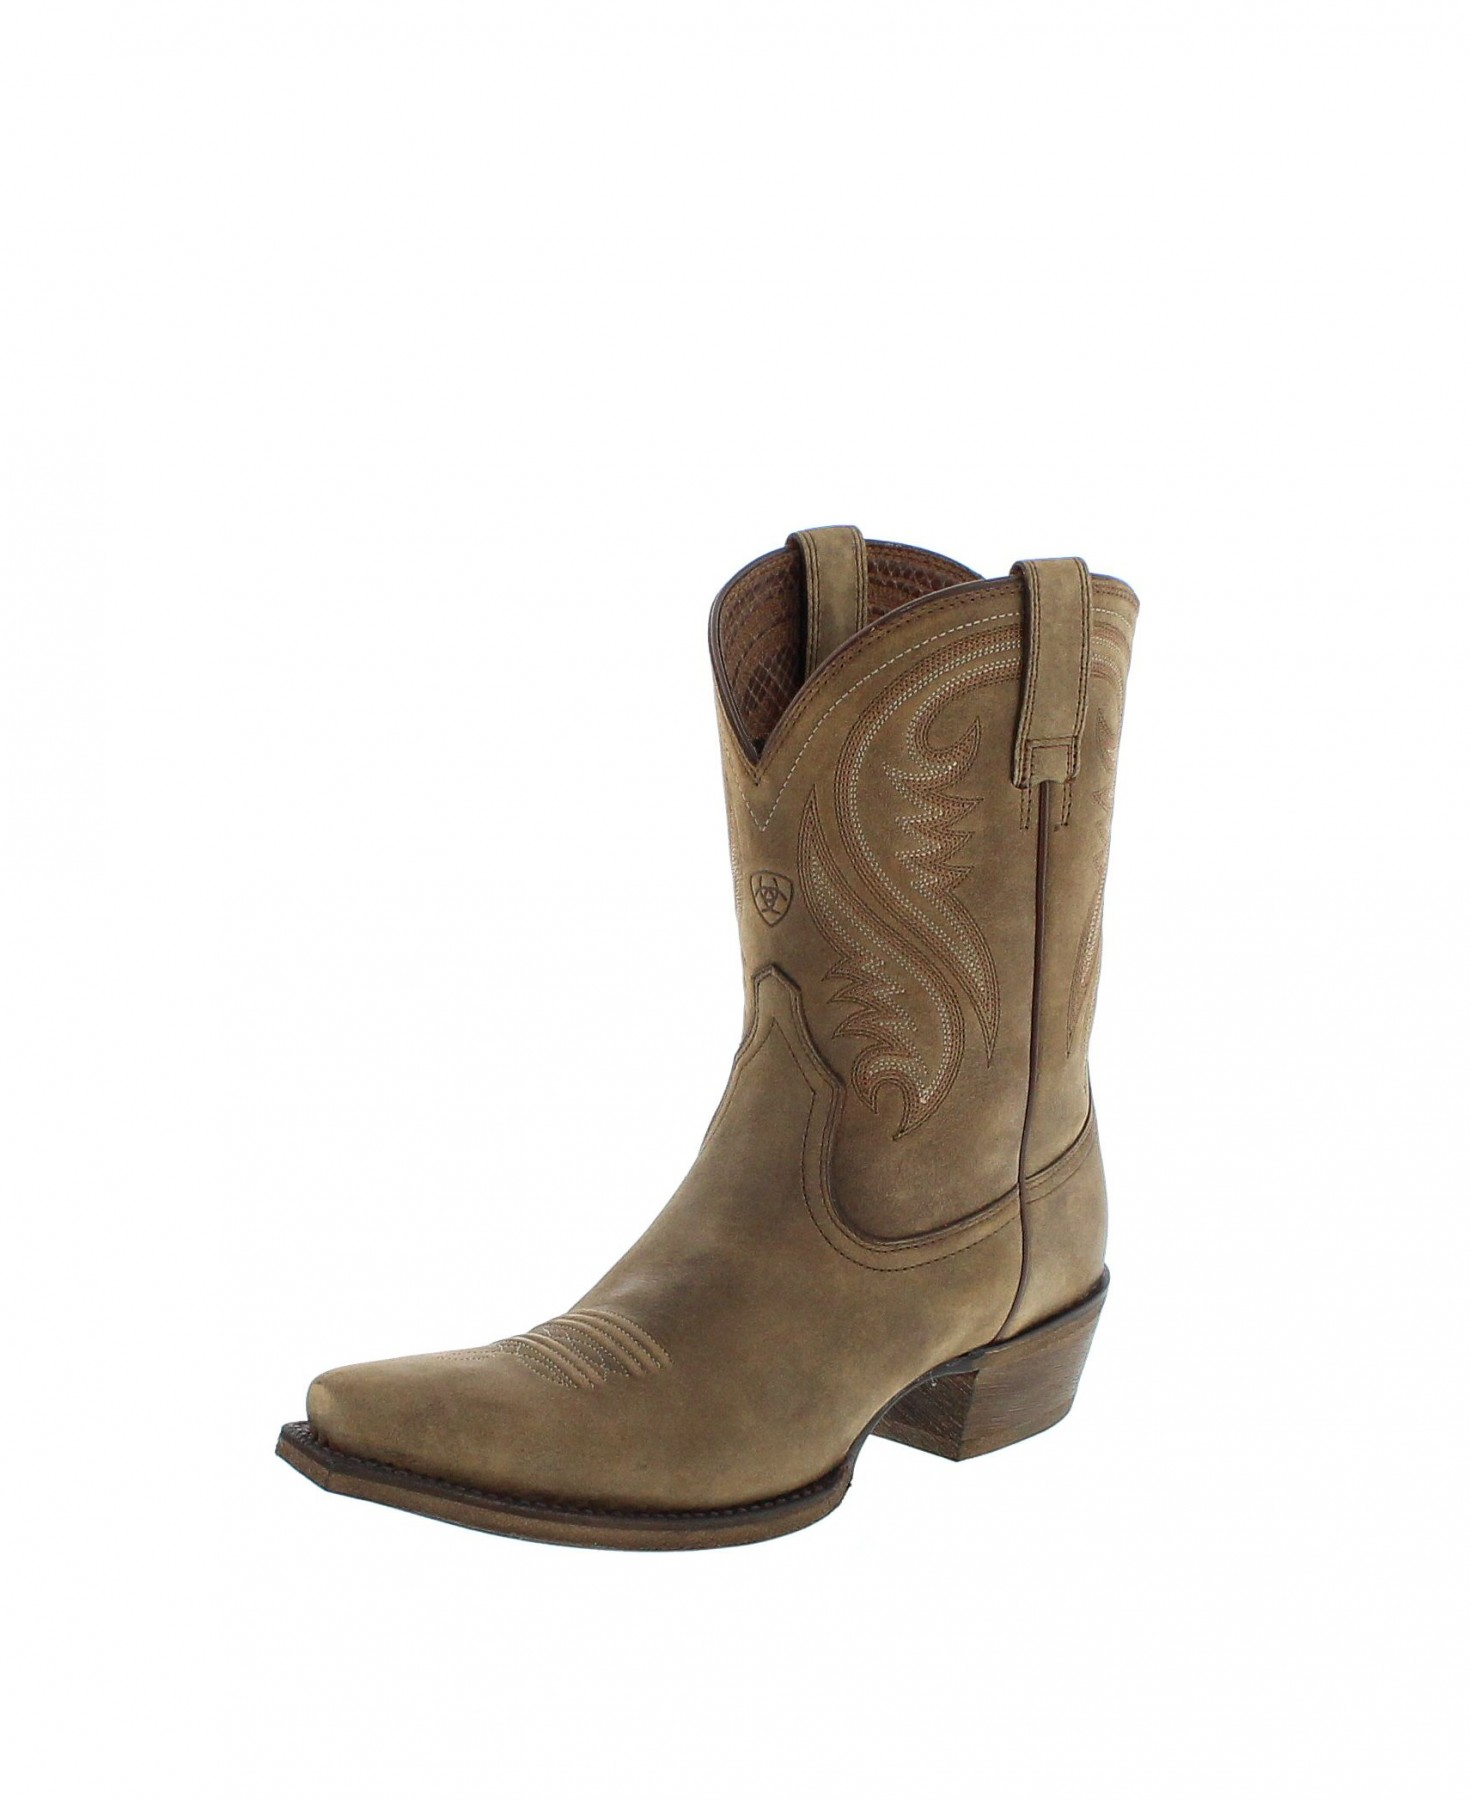 Ariat 18606 WILLOW Brown Bomber